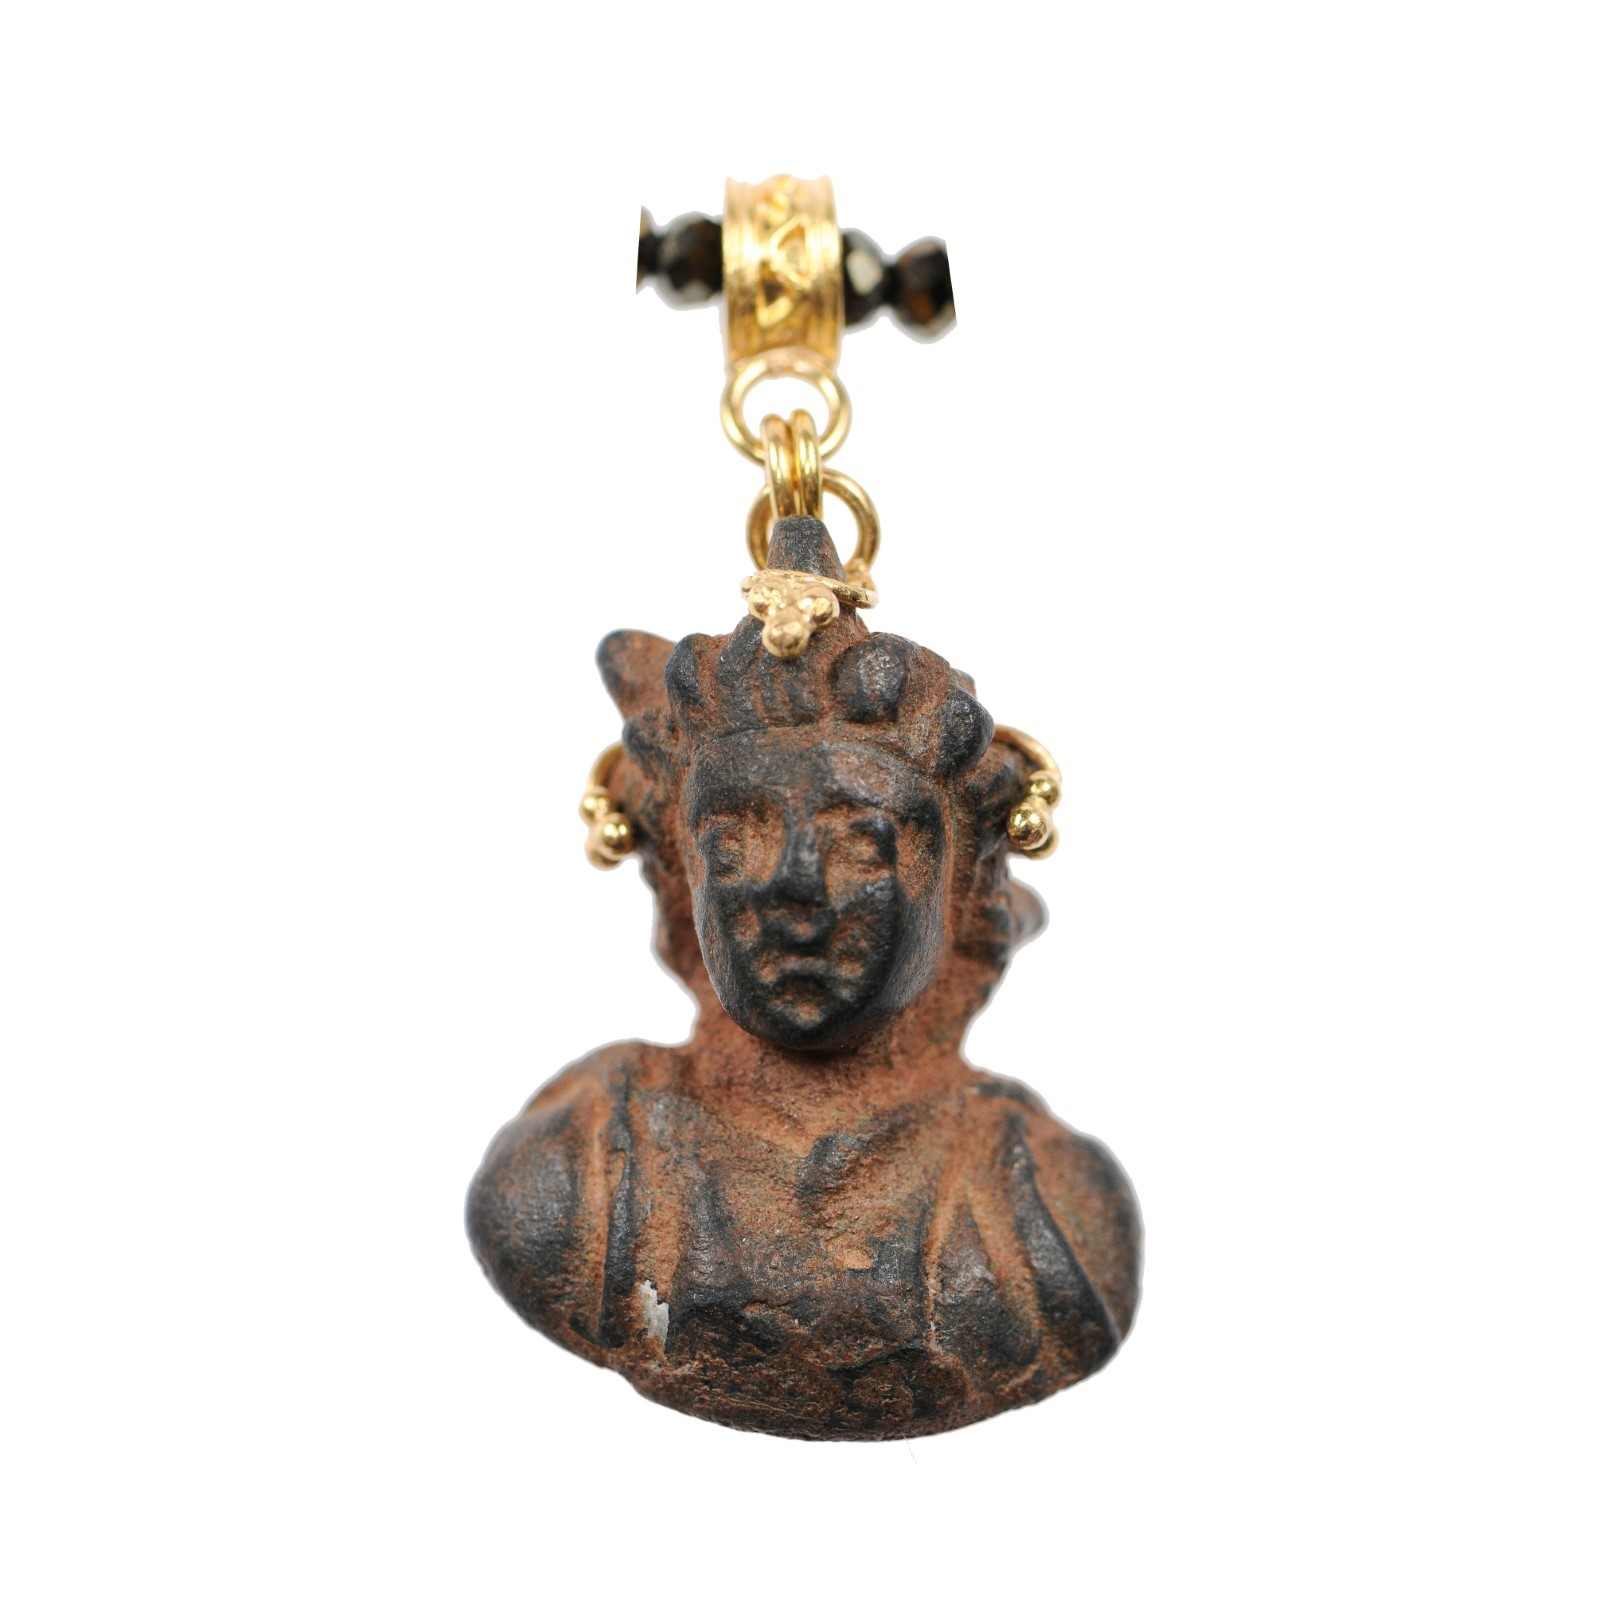 Ancient Roman Prince Bust in 21 kt Pendant